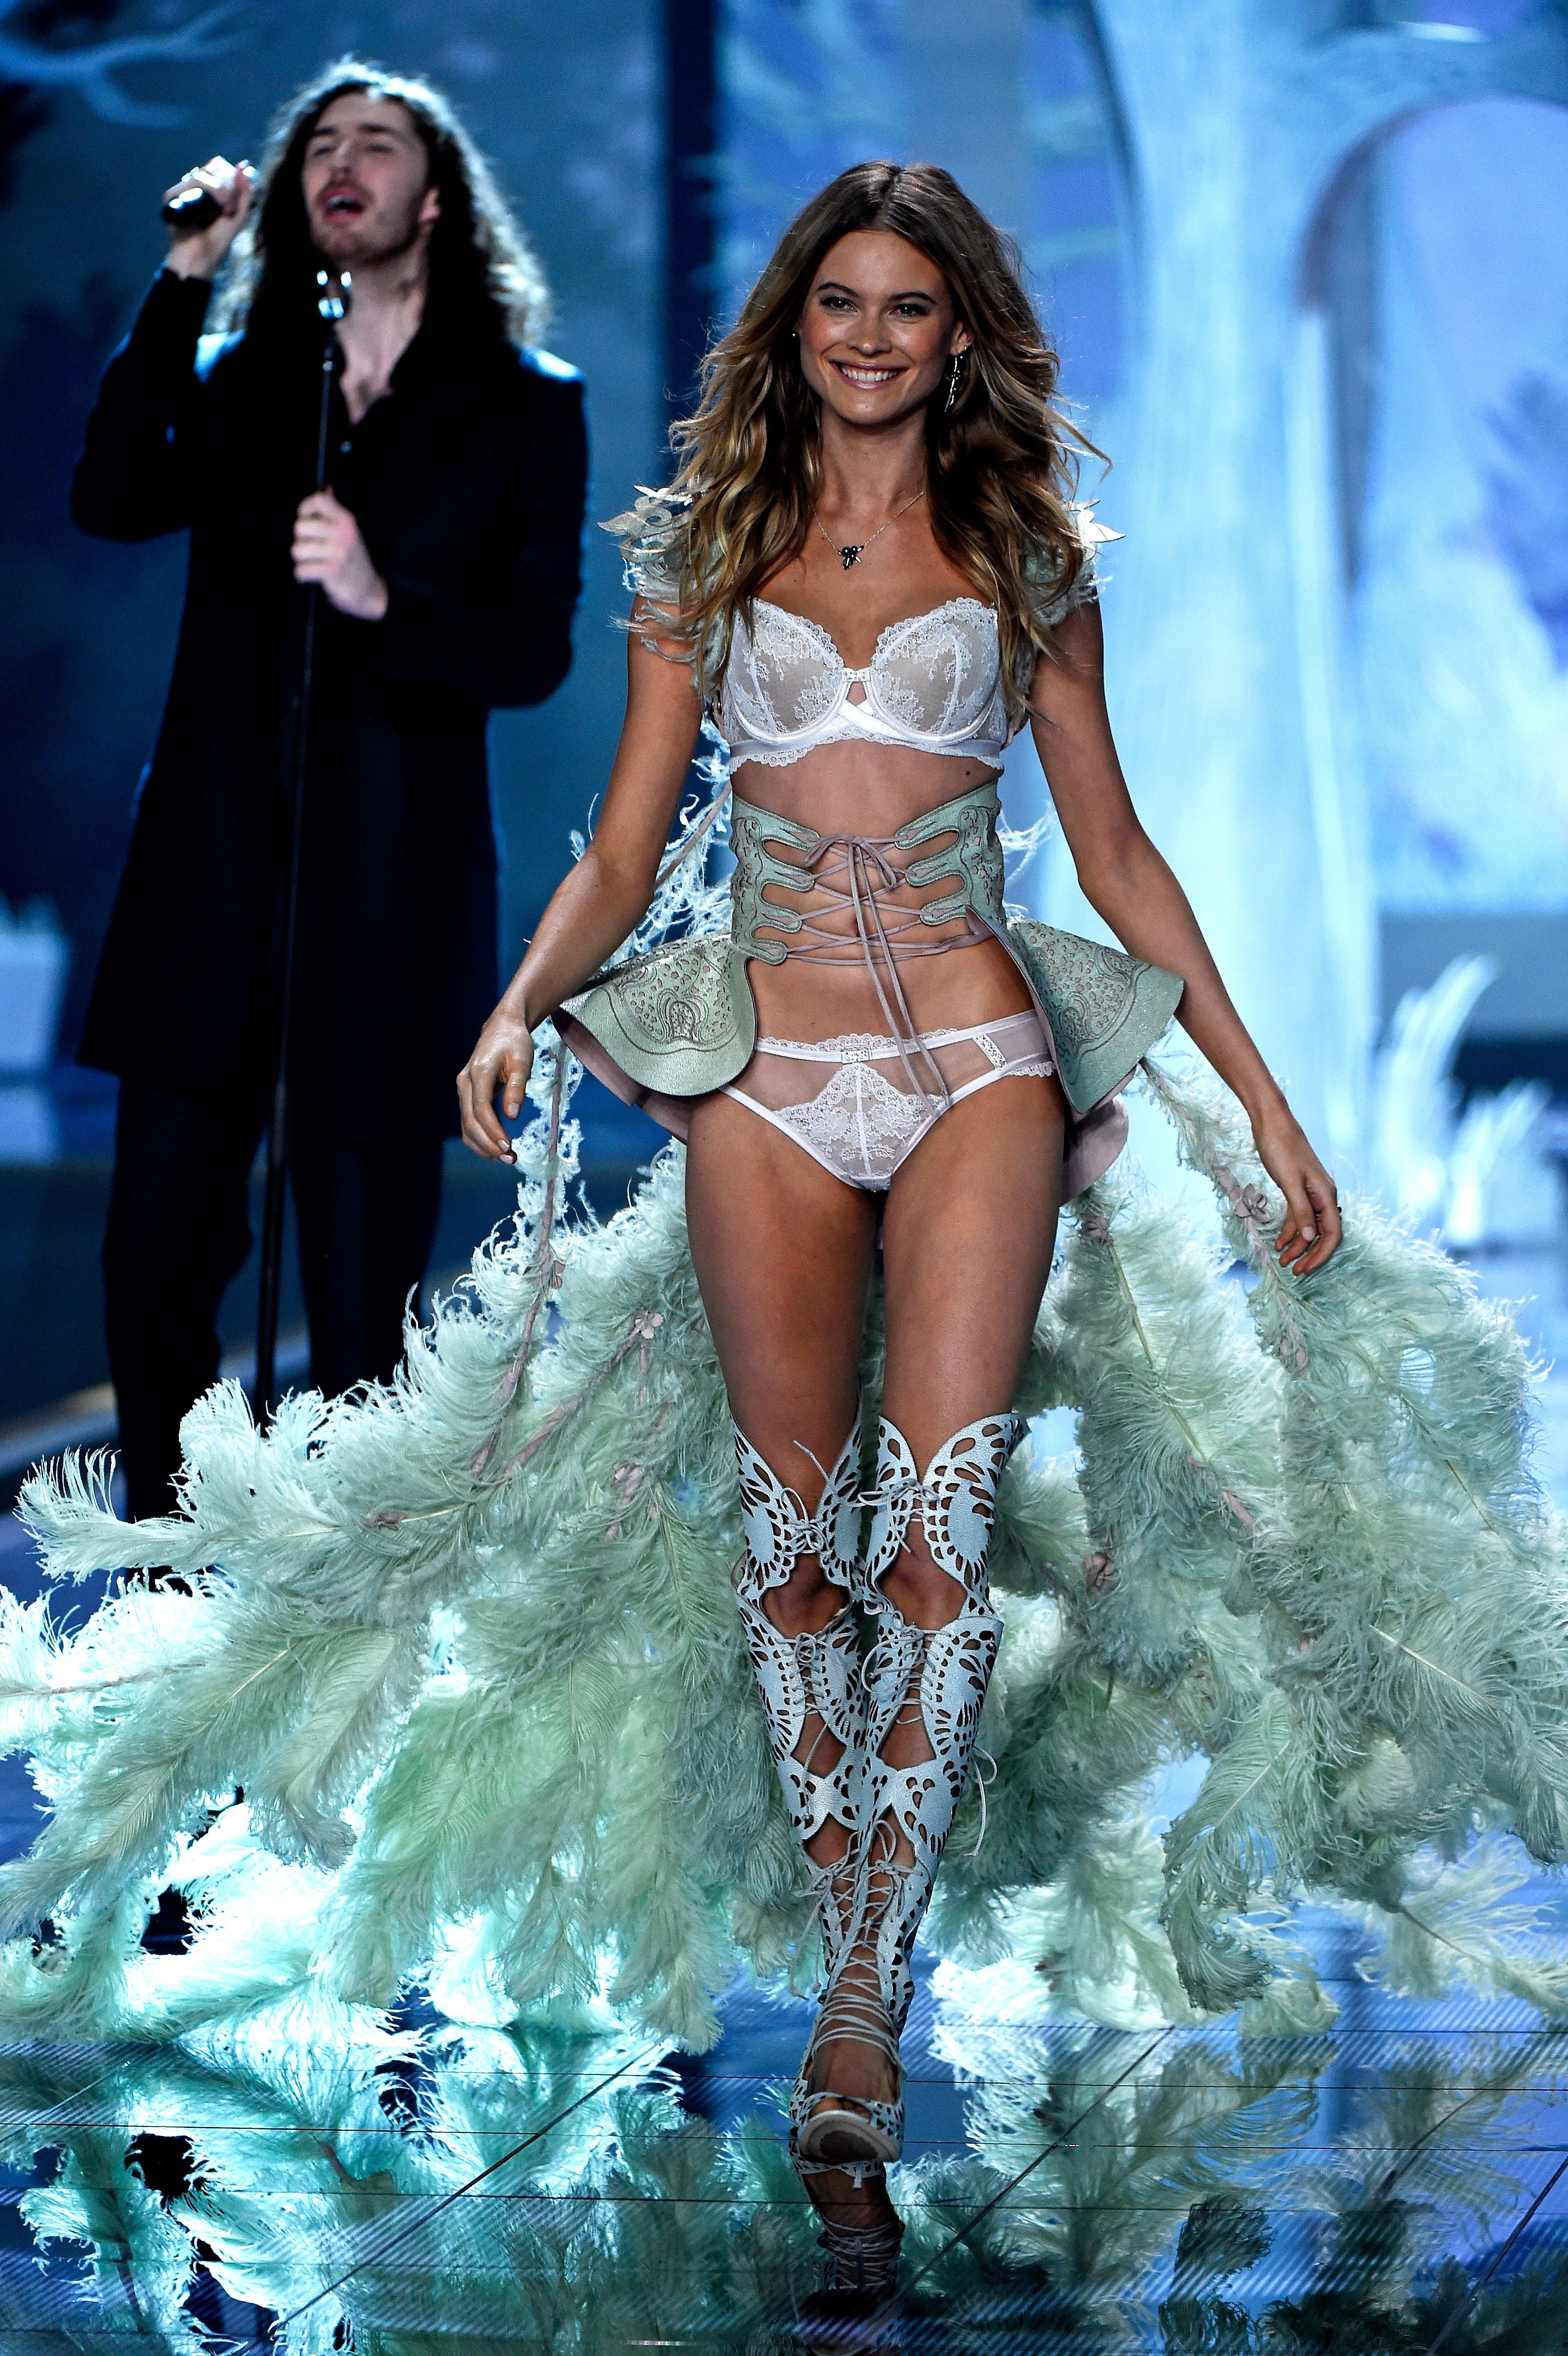 Behati Prinsloo - Victoria's Secret Fashion Show 2014 | Harper's Bazaar